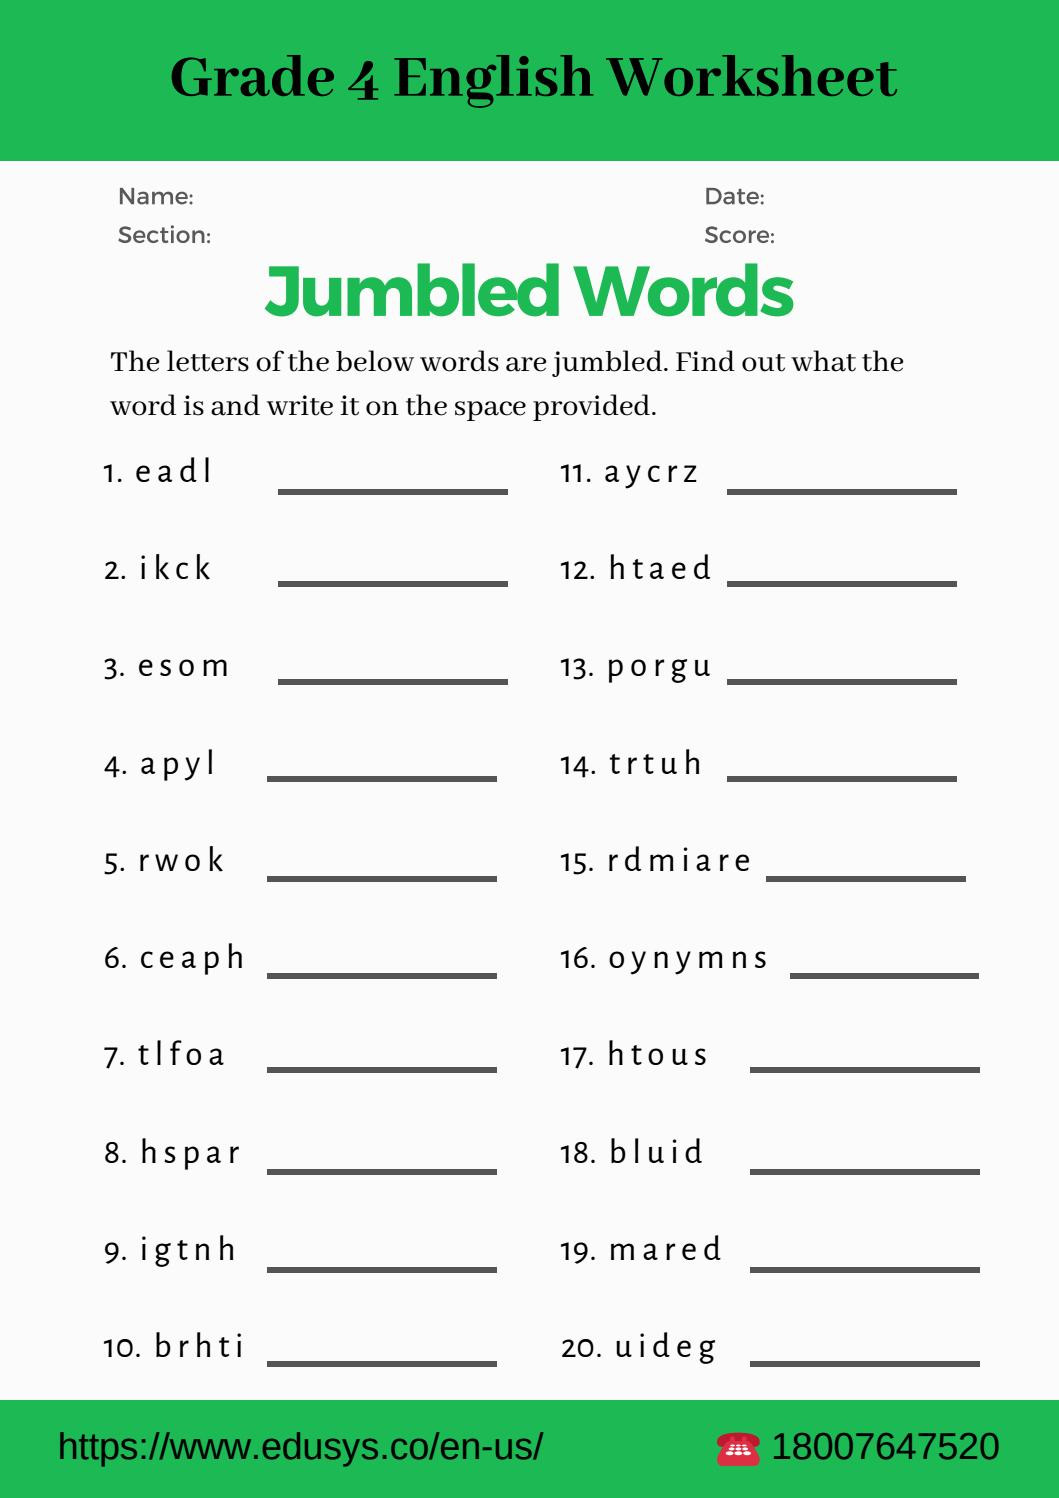 4th Grade English Worksheets 4th Grade English Vocabulary Worksheet Pdf by Nithya issuu